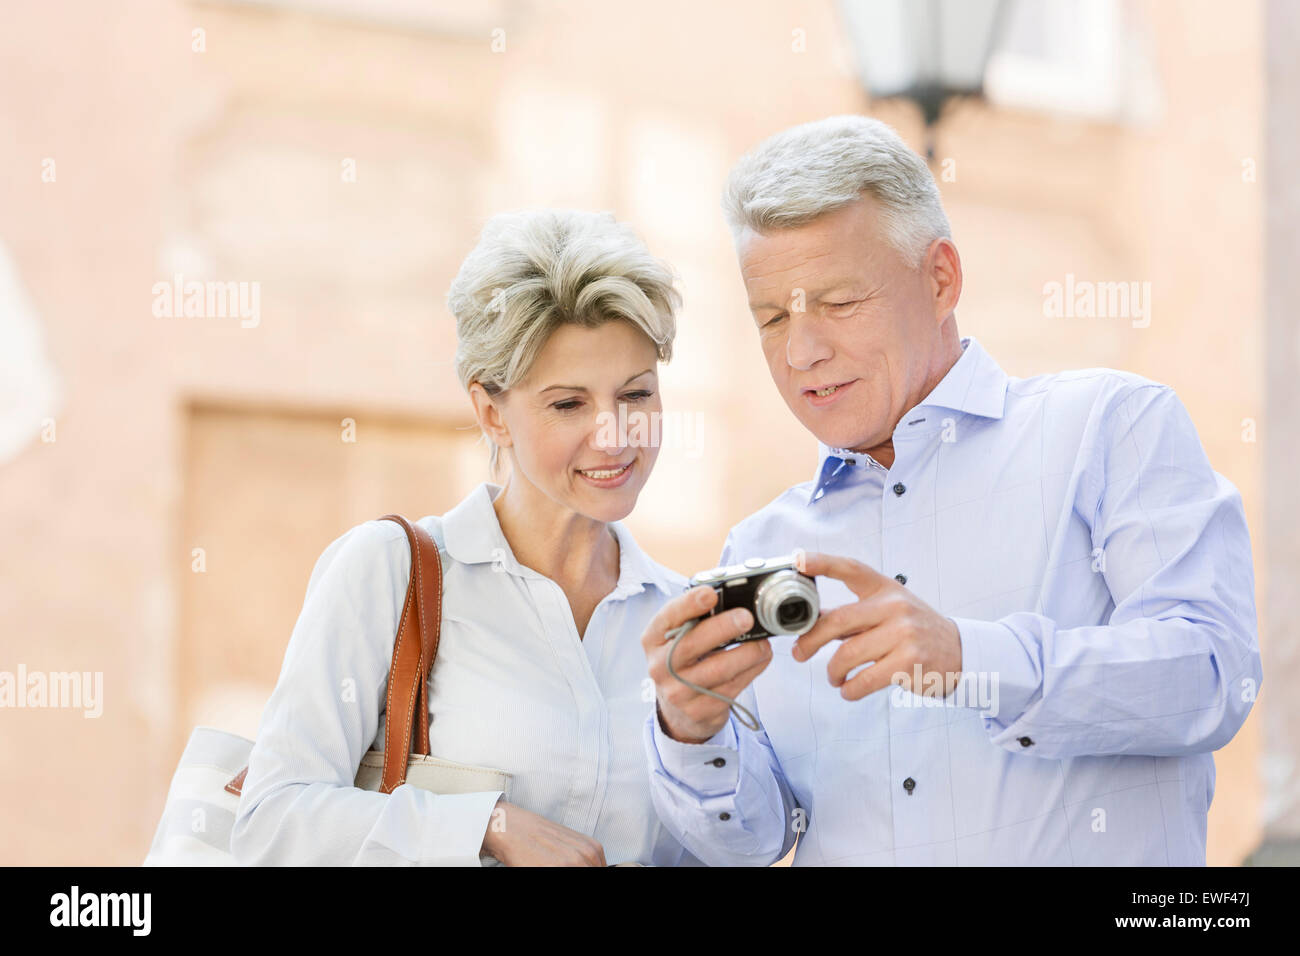 Smiling middle-aged couple reviewing photos on digital camera outdoors - Stock Image